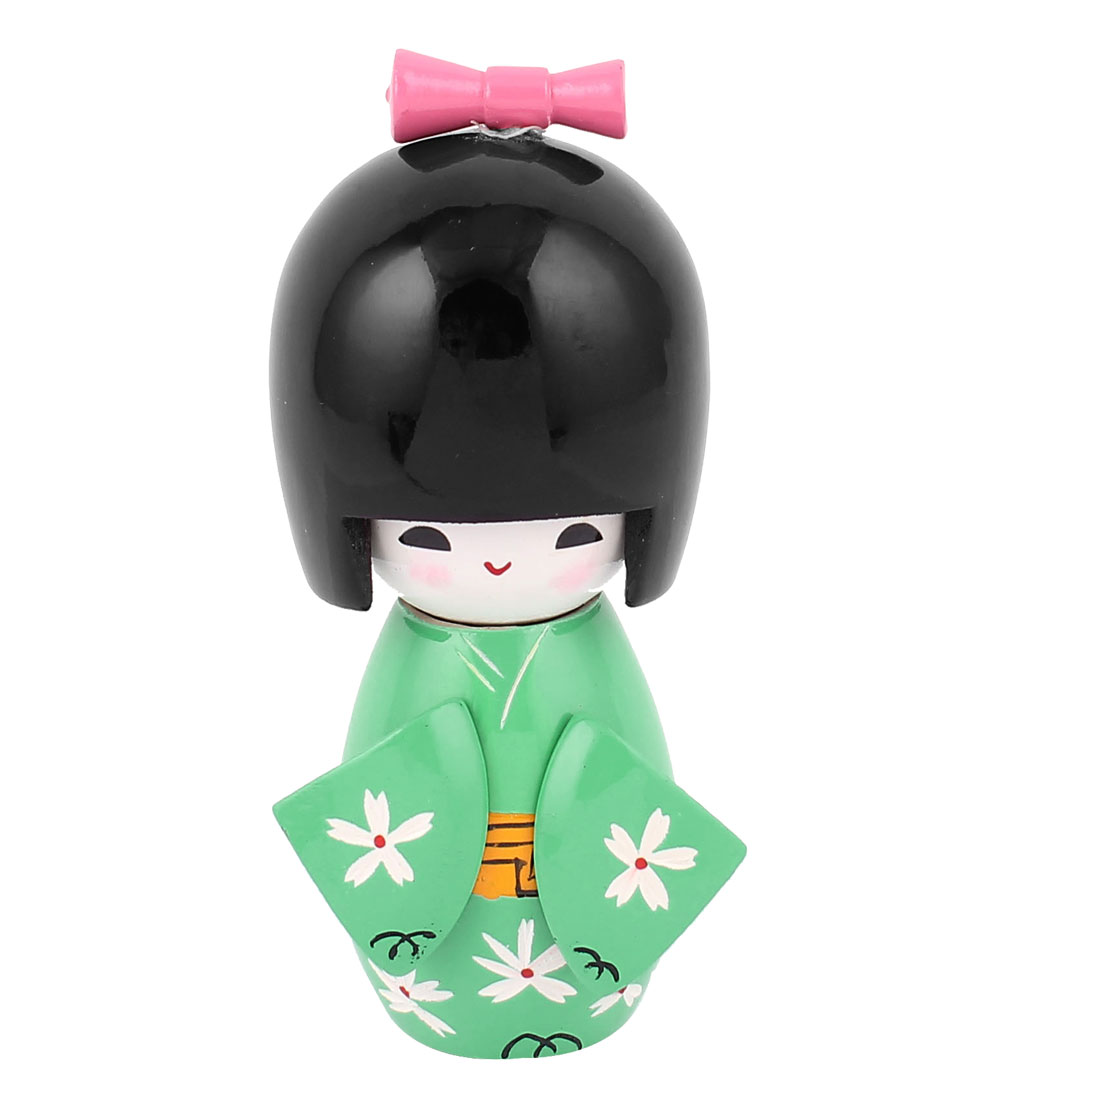 Japanese Engraved Flower Pattern Black Head Green Body Kokeshi Doll